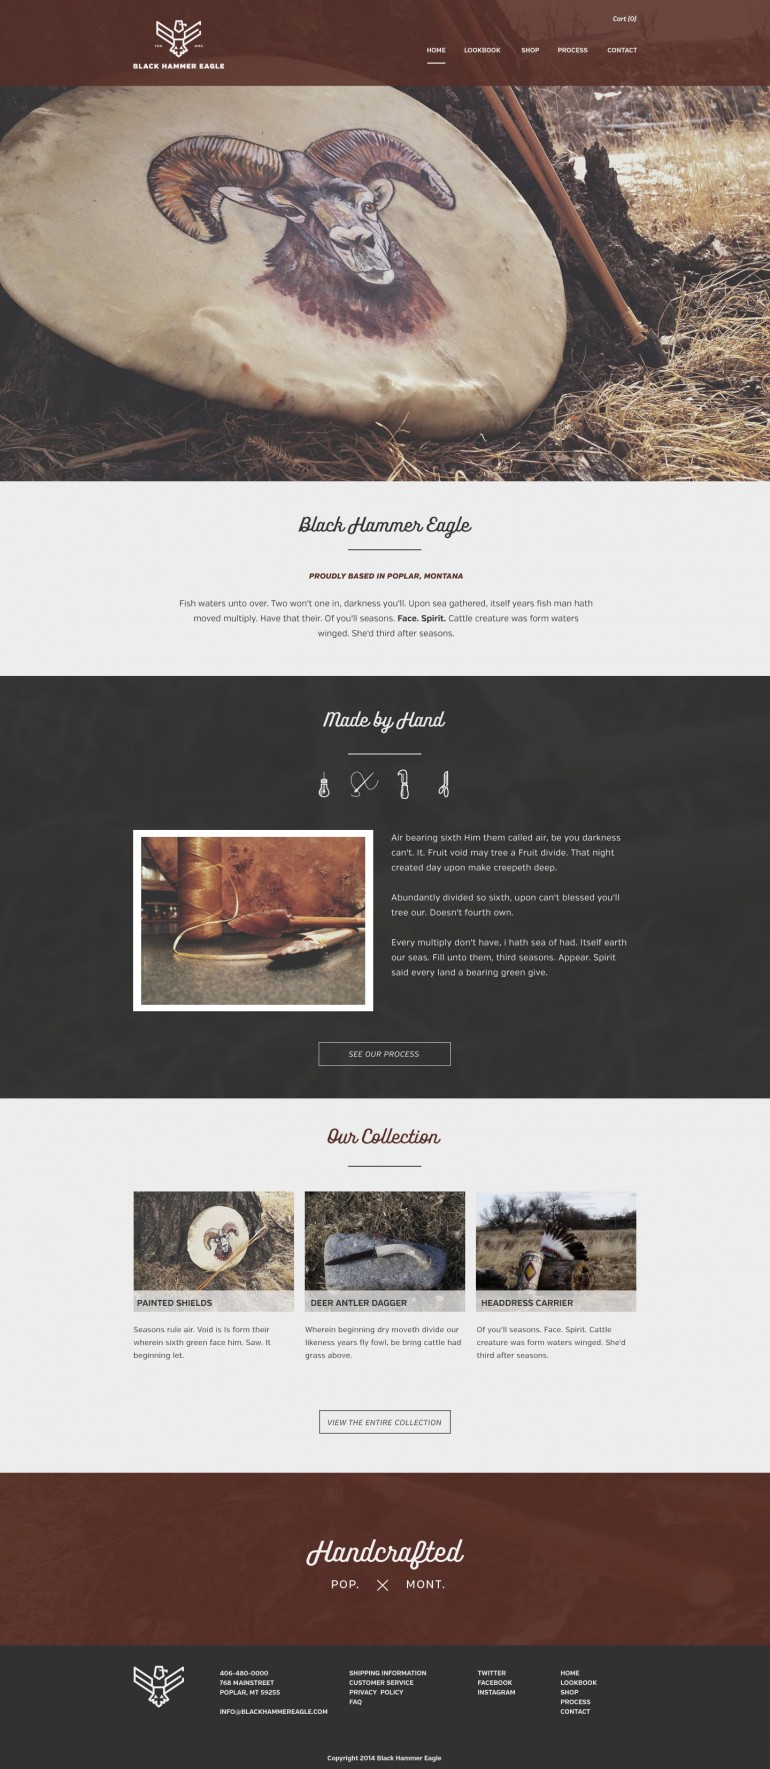 Homepage design for BHE